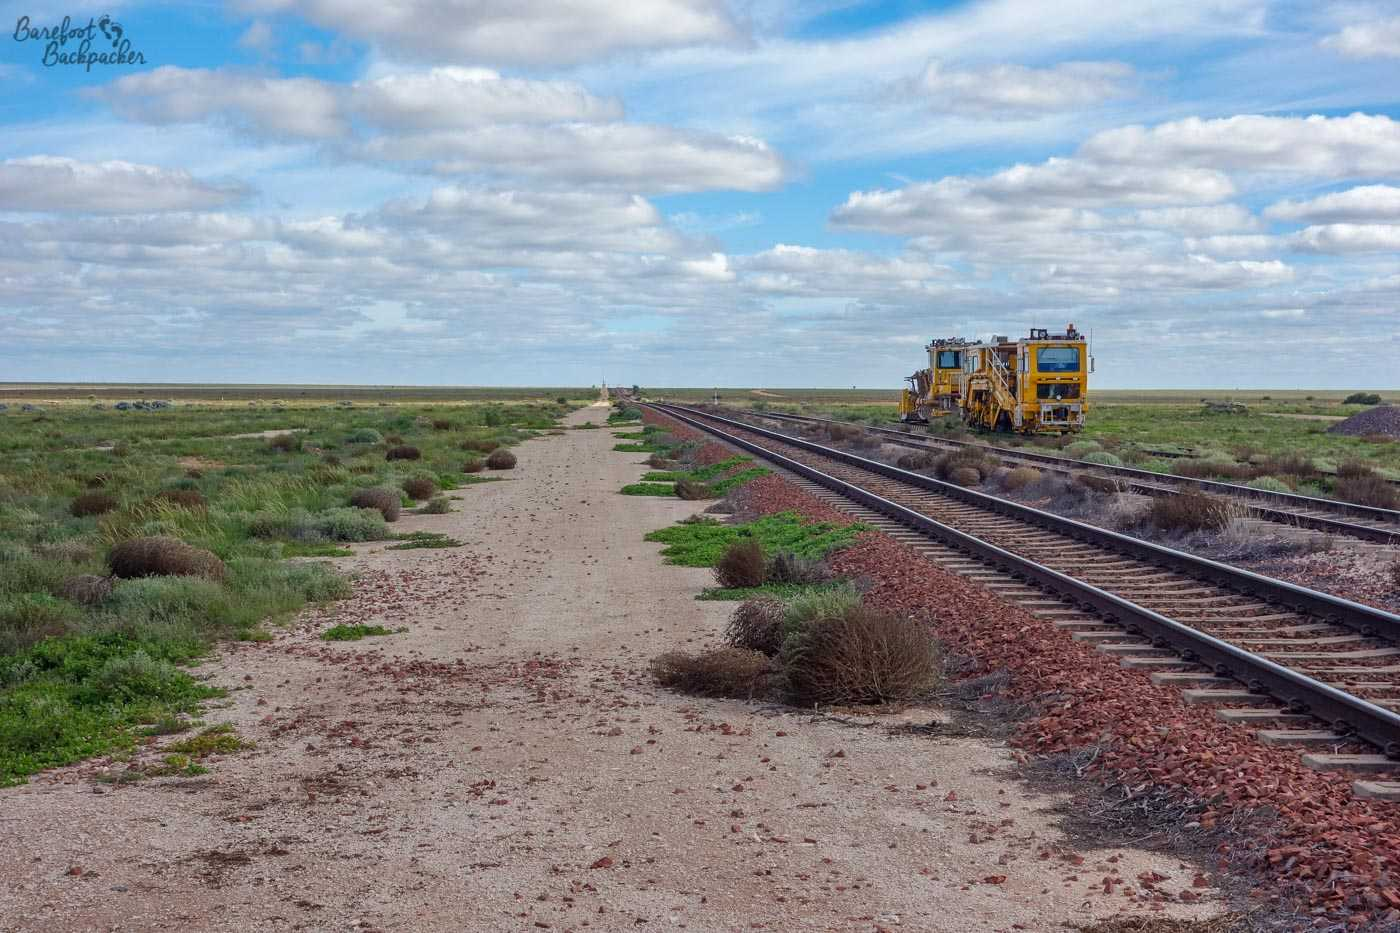 Siding at Cook Railway Station. There's a train engine thing in the distance, otherwise it's flat, featureless, and and endless – the railway line goes straight towards the horizon.